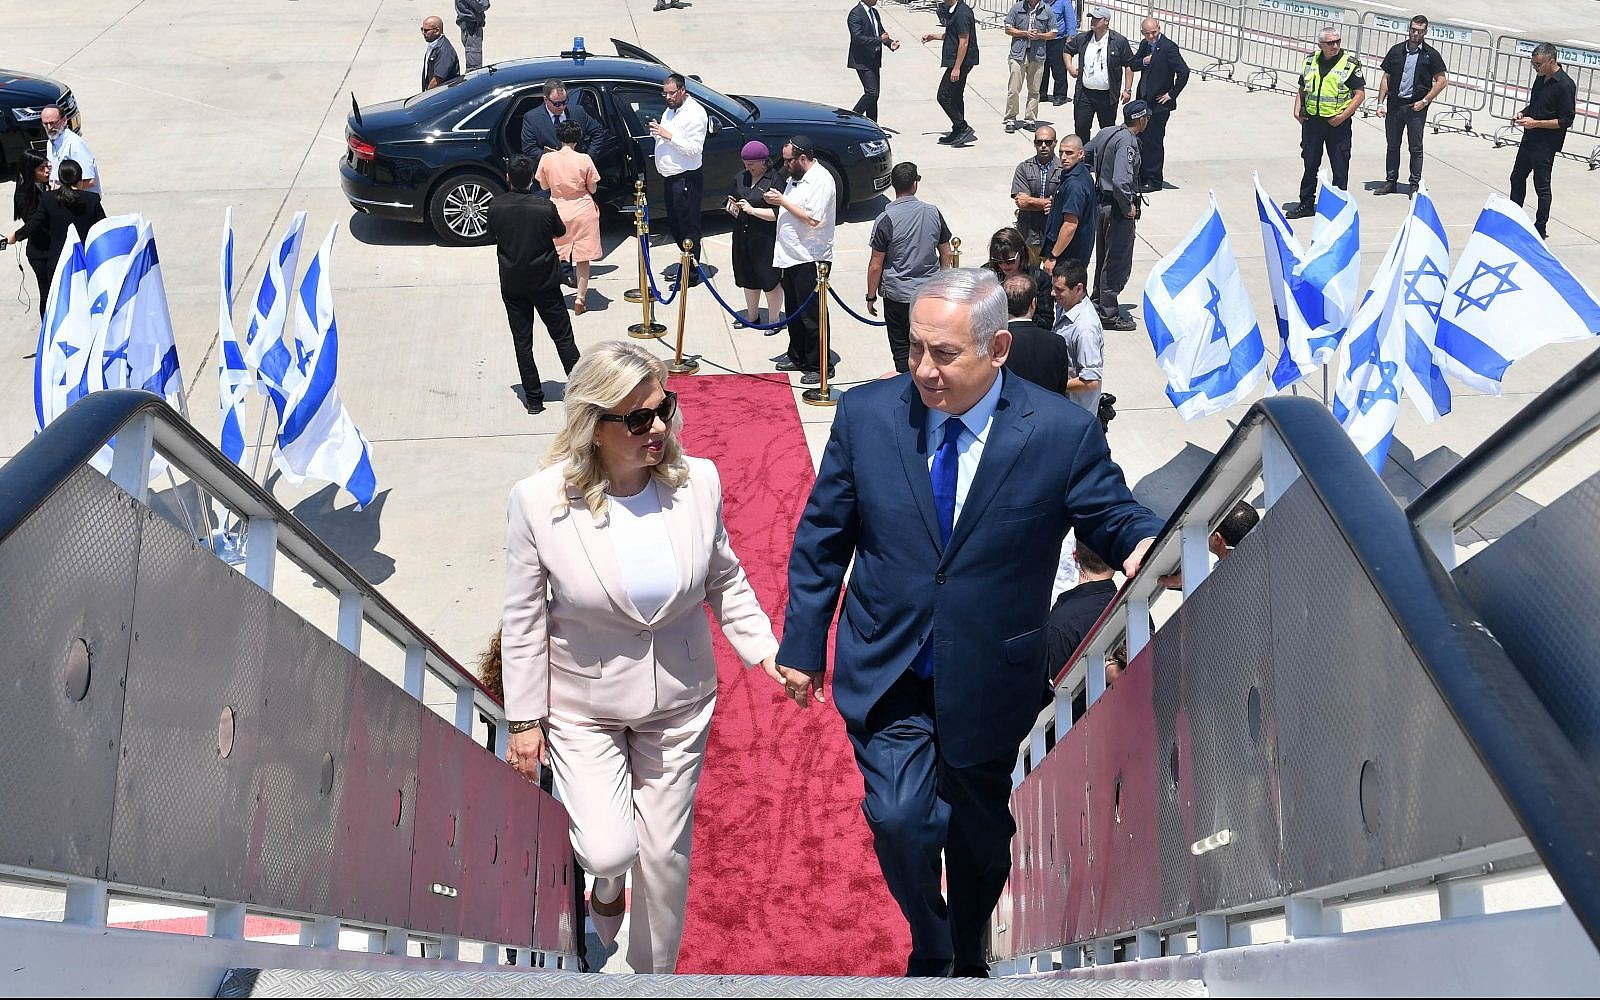 Private jet owners said to have told Netanyahu they didn't want him to use plane